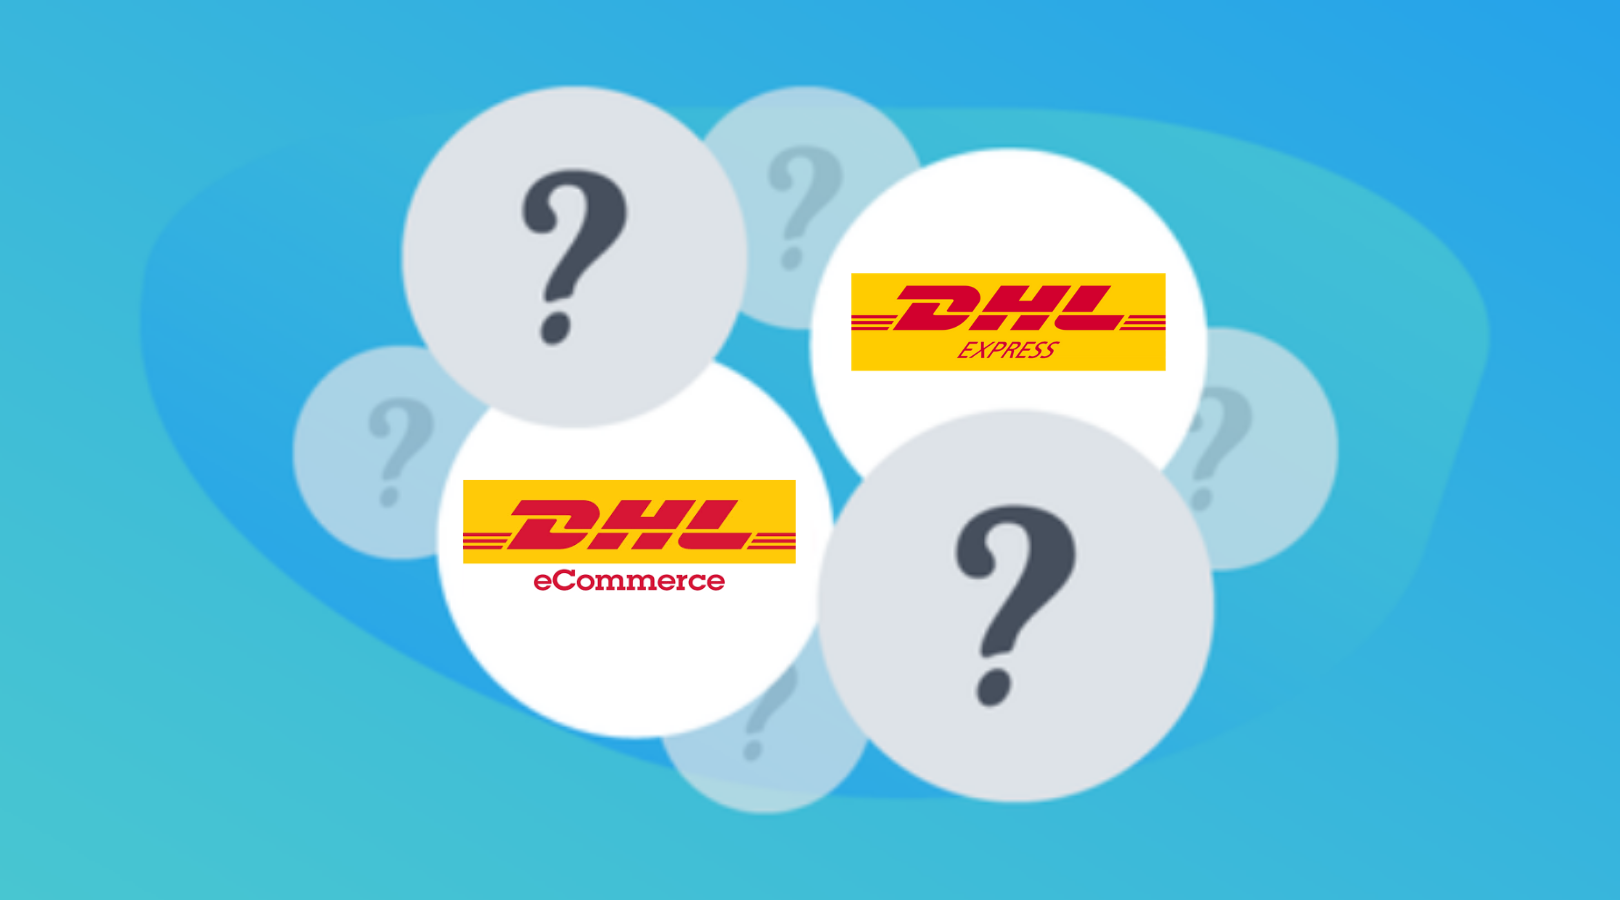 DHL eCommerce vs  DHL Express: Which is Better for Online